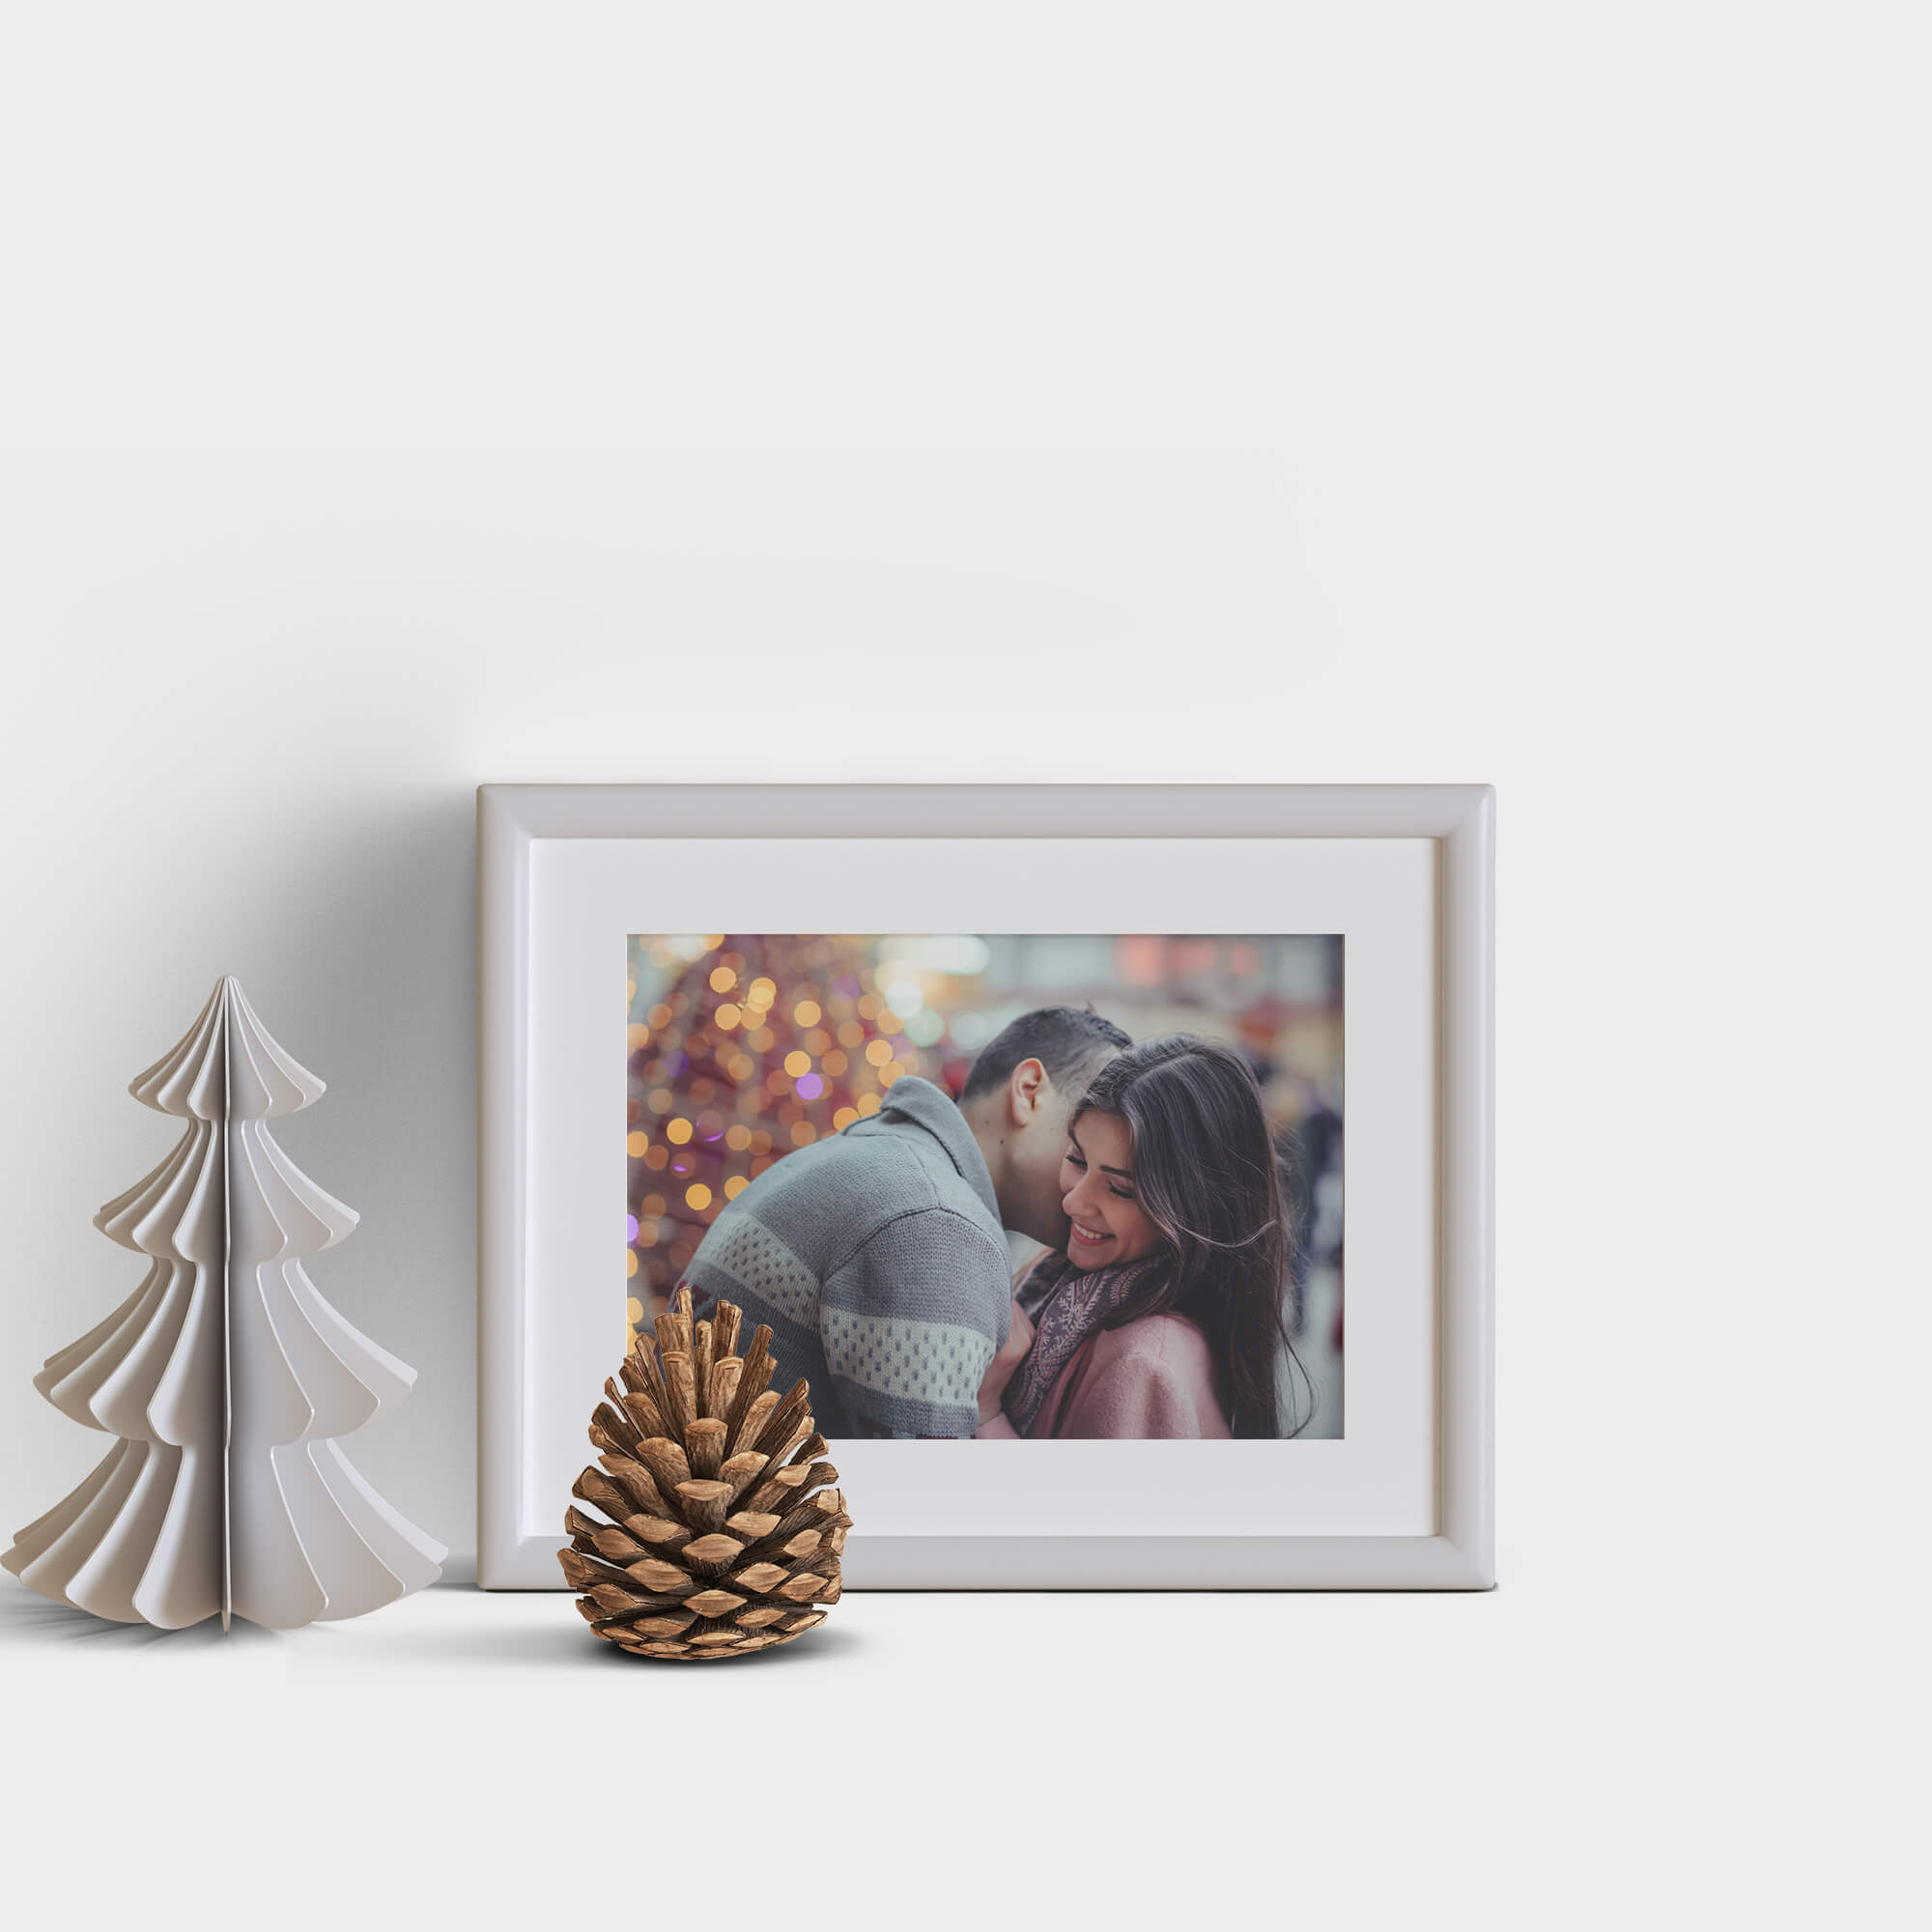 Design Free Holiday Greeting Frame Mockup PSD Template